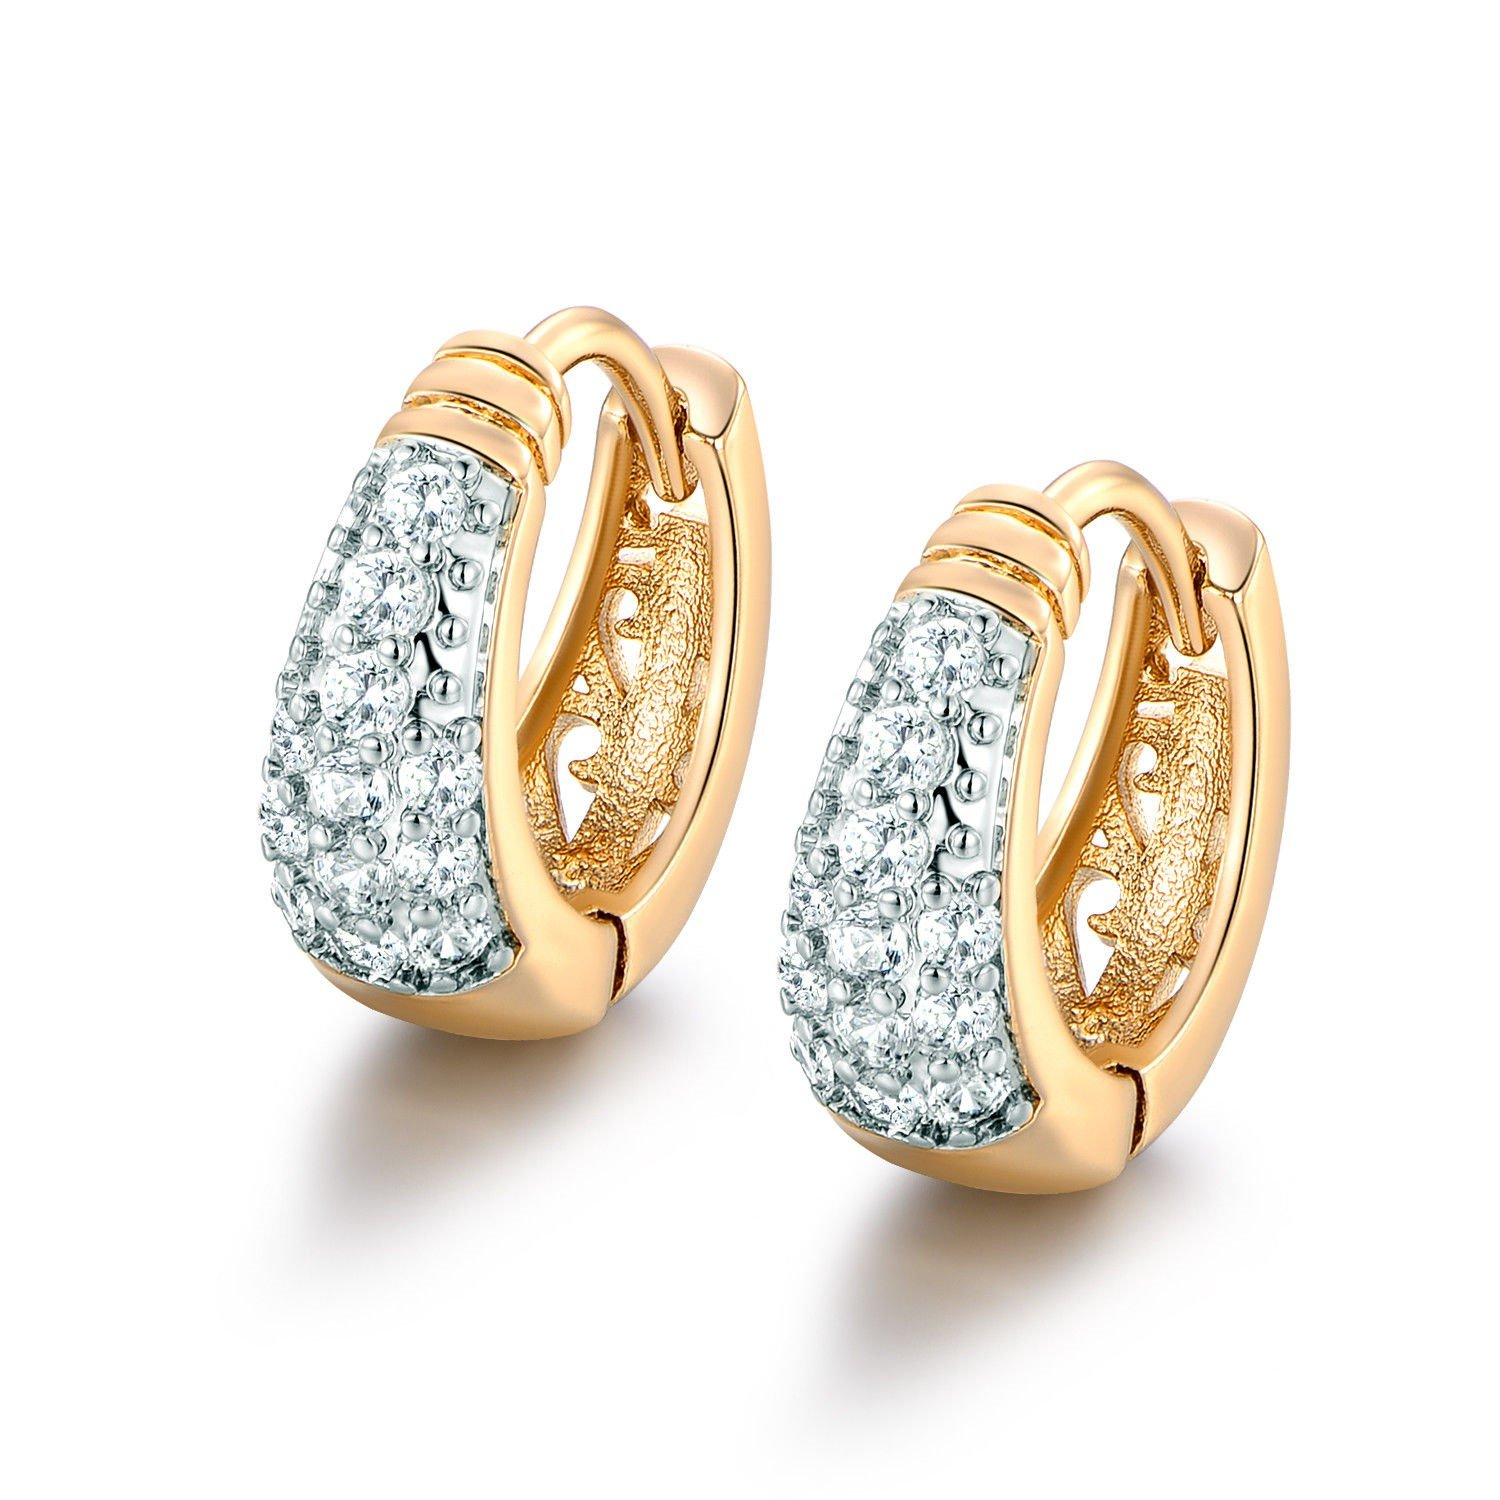 CS-DB 18K Real gold filled Platinum cool white Swarovski Crystal lady promise hoop earring CS-DB Gold